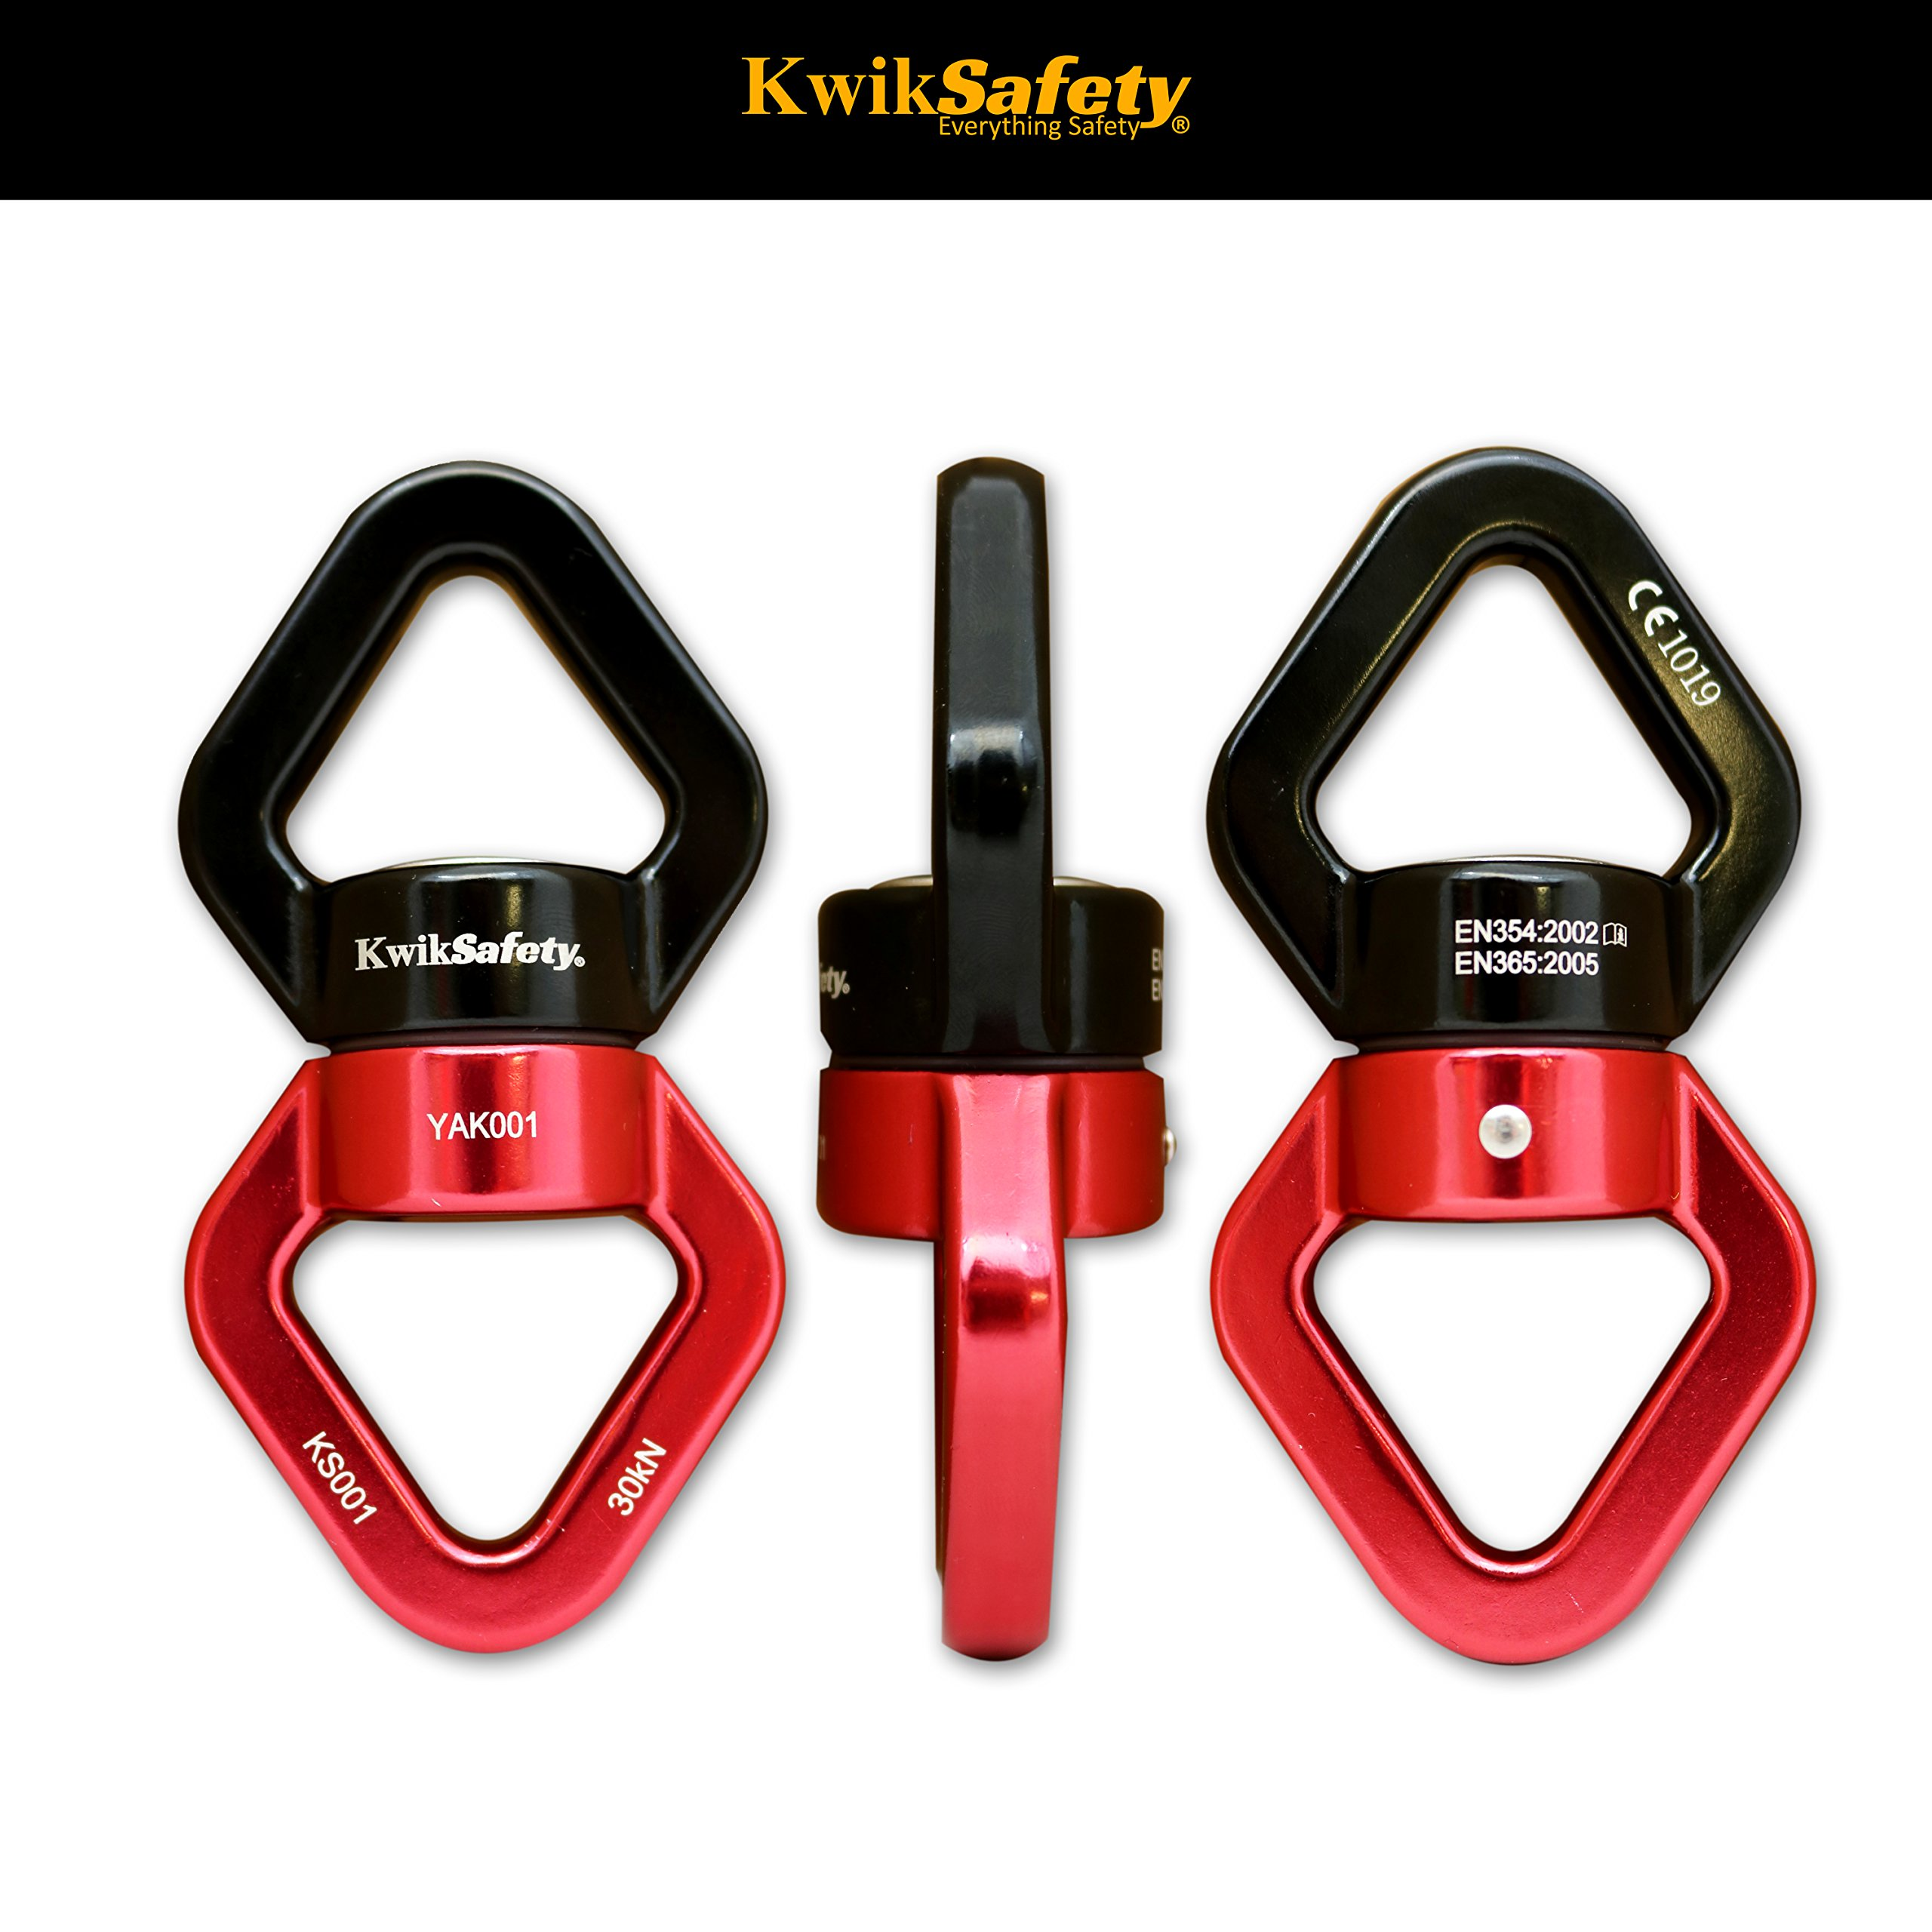 KwikSafety EXPLORER | Swivel Carabiner Set | Heavy Duty Lightweight Aluminum Alloy Climbing Gear | Swing Swivel 30 kN Carabiners 23 kN | CE & EN Certified | High Performance Smooth Rotating Device